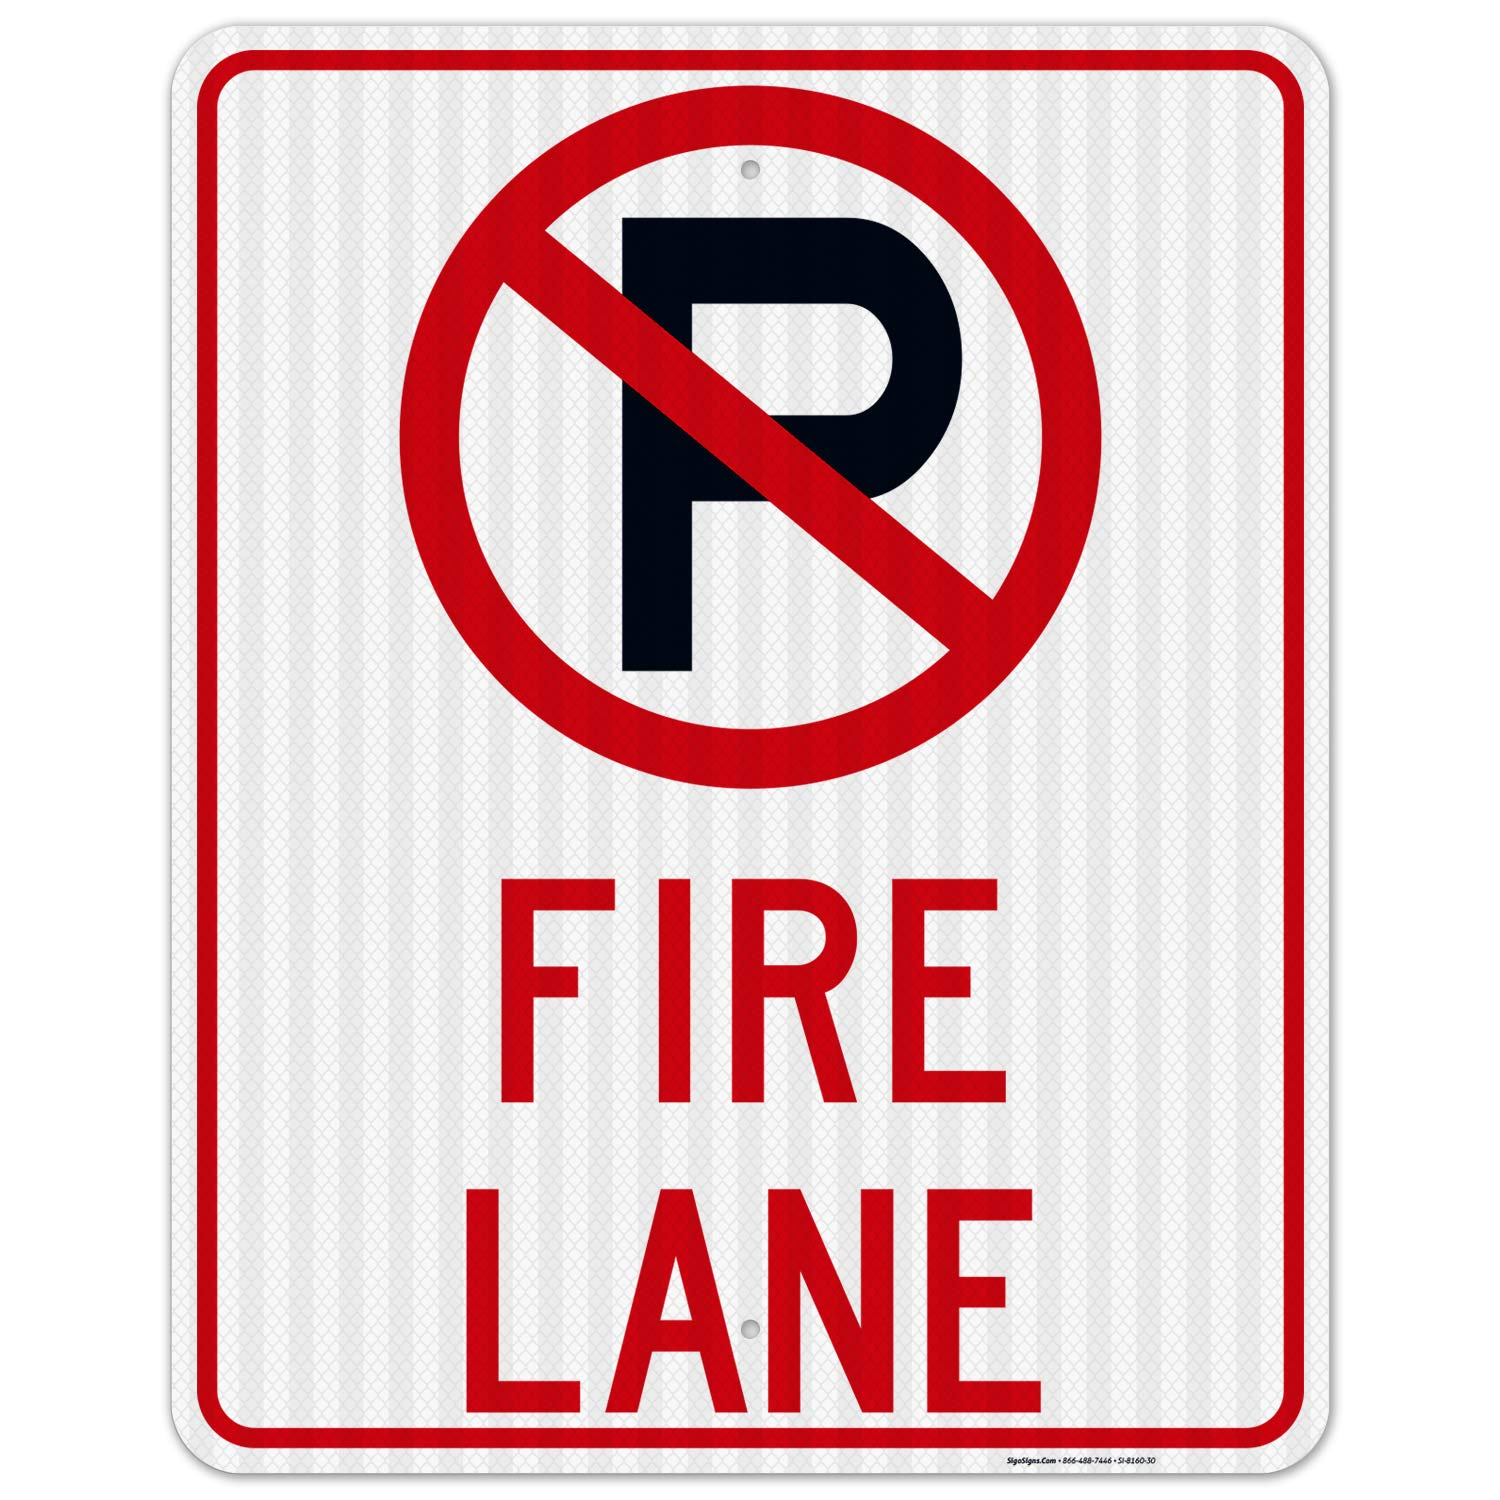 No Parking Fire Lane Free Shipping New Sign Board Reflectiv 24x30 3M EGP Sale SALE% OFF Inches